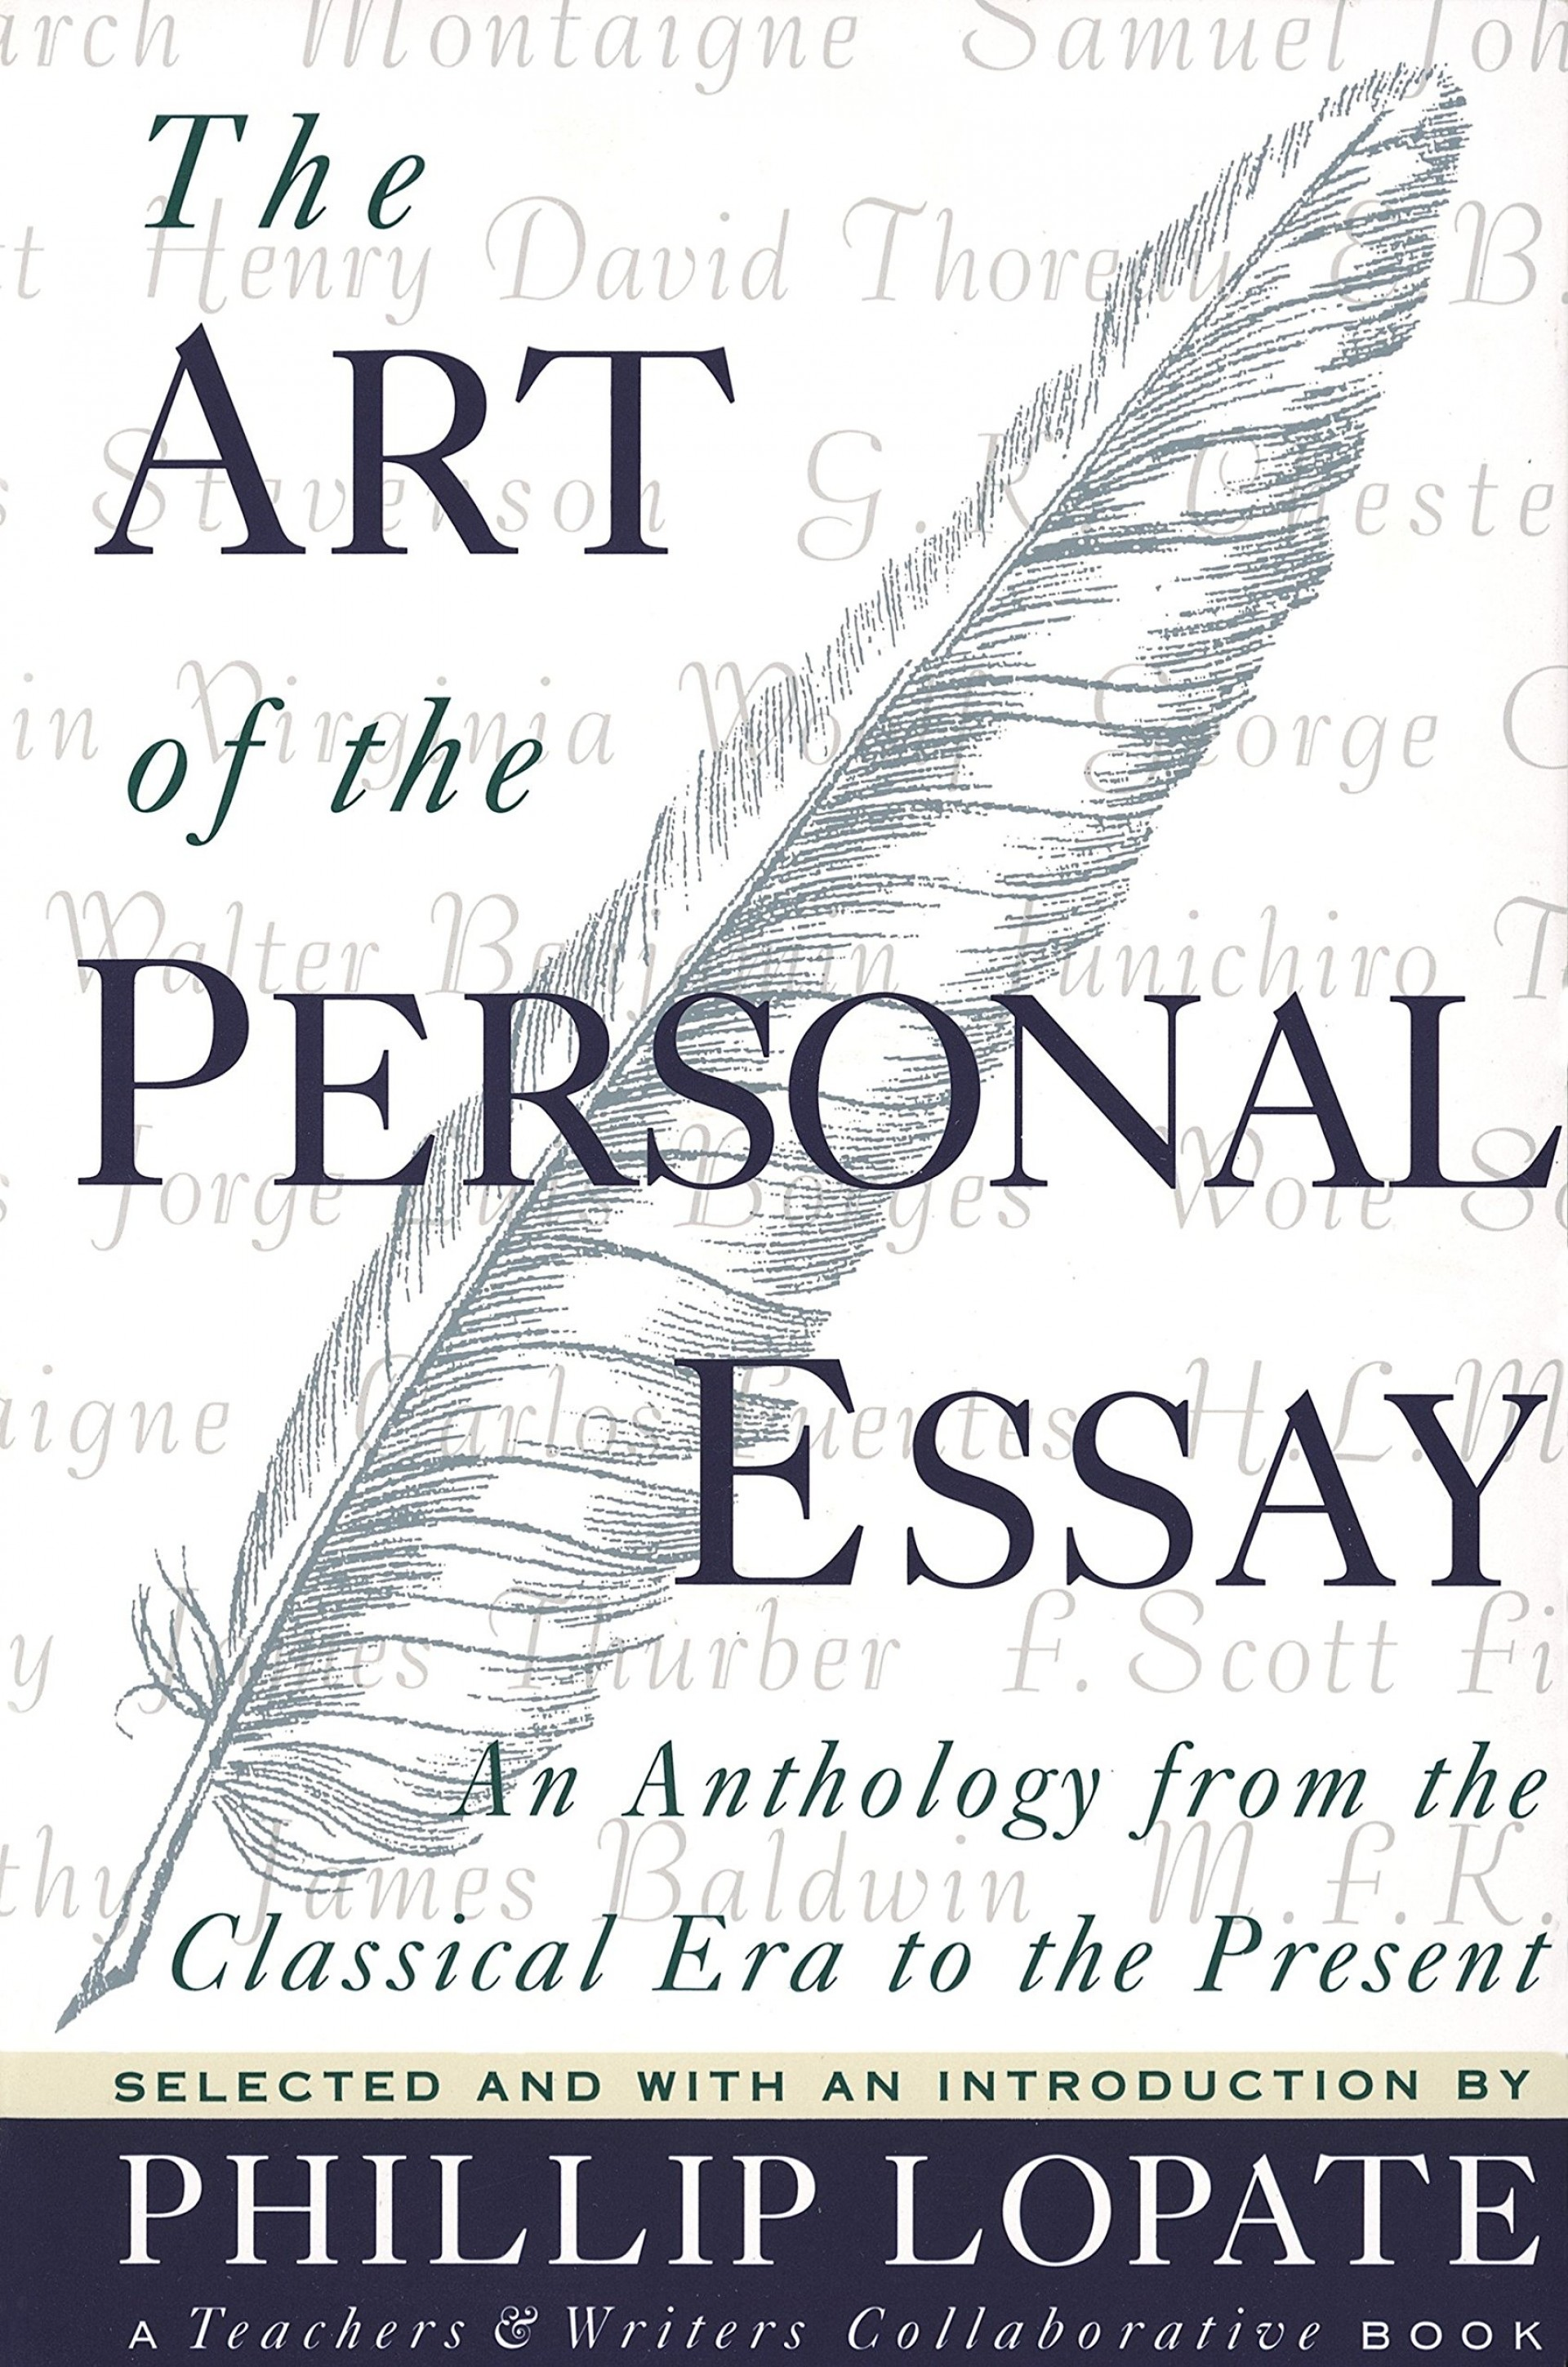 001 91bxbkzxmml The Art Of Personal Essay Beautiful Phillip Lopate Table Contents Sparknotes 1920